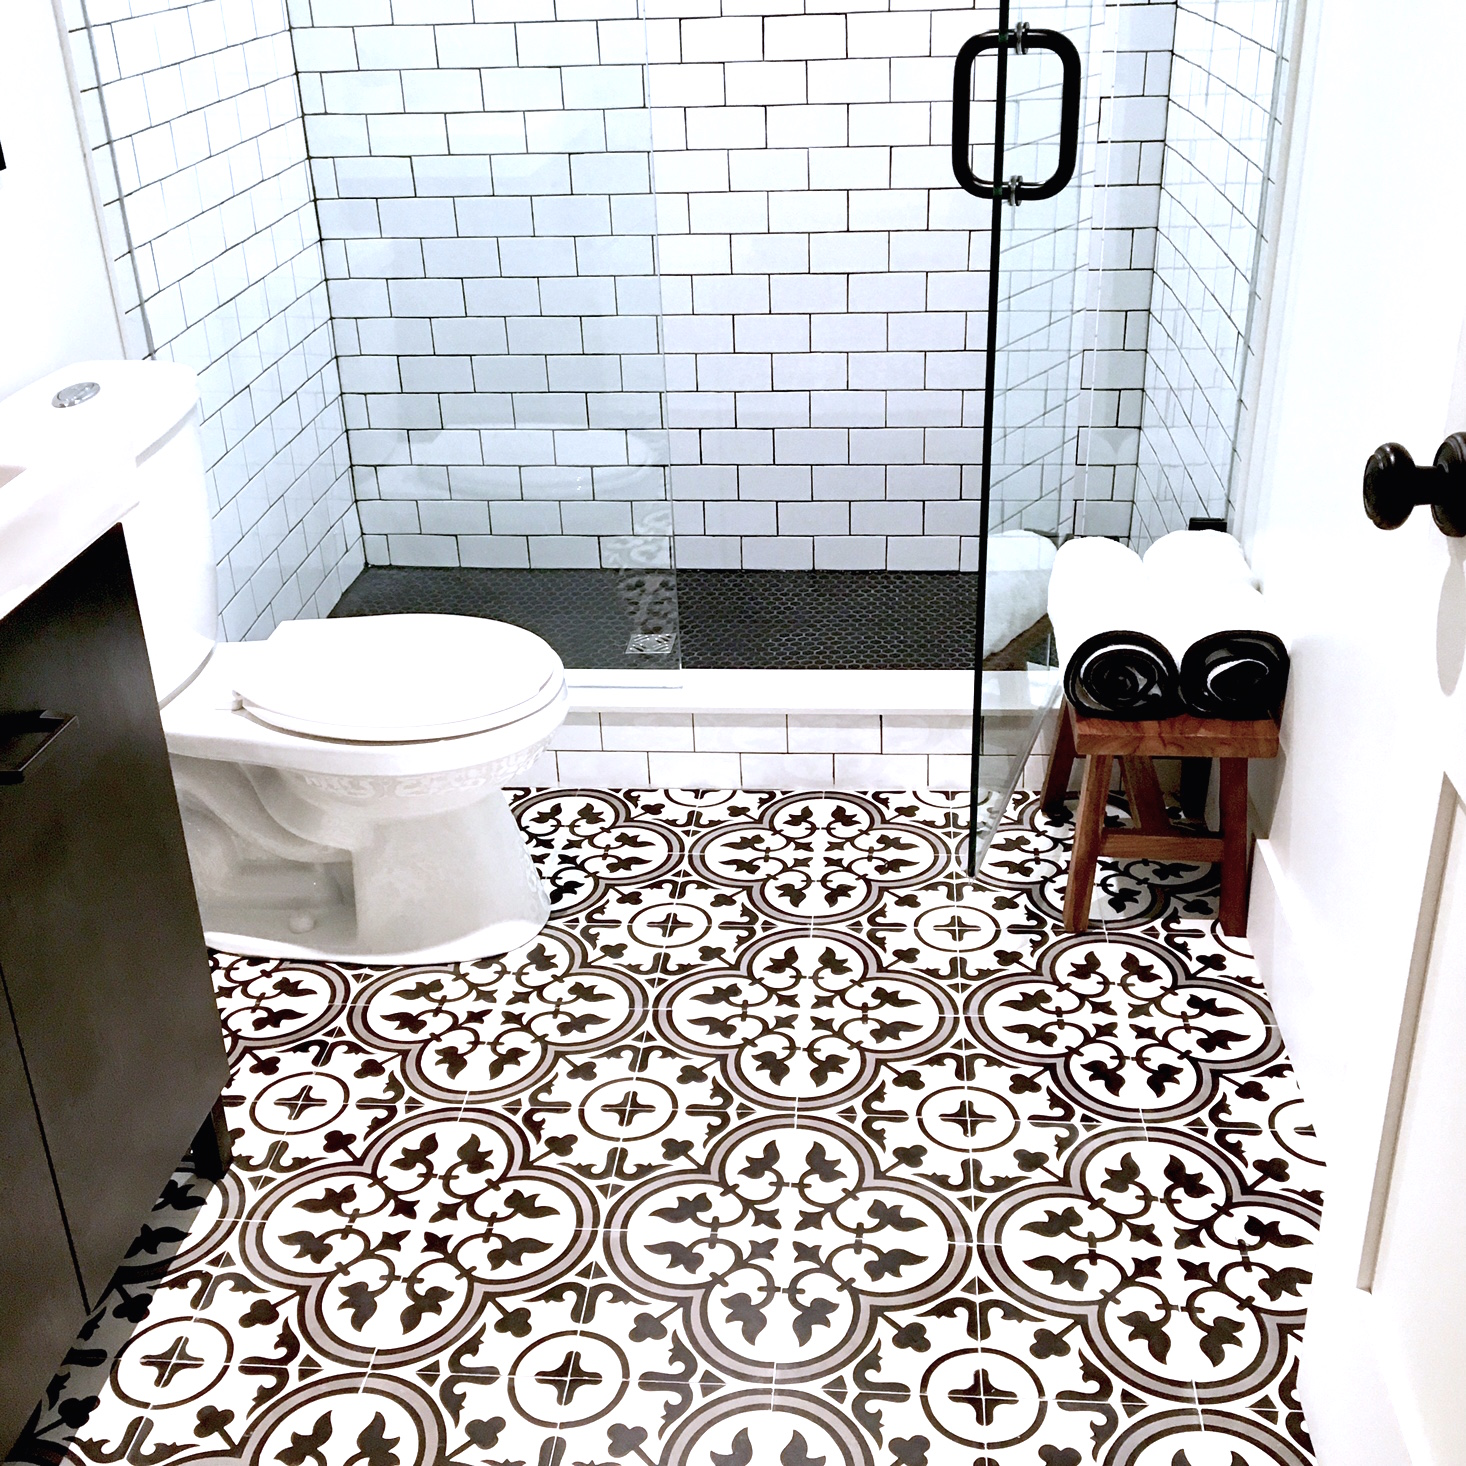 Wayfair floor tile youll love harlow thistle home design now this black and white basement bathroom is my cool in an otherwise chaotic sticky toddler filled life see more pics here dailygadgetfo Choice Image